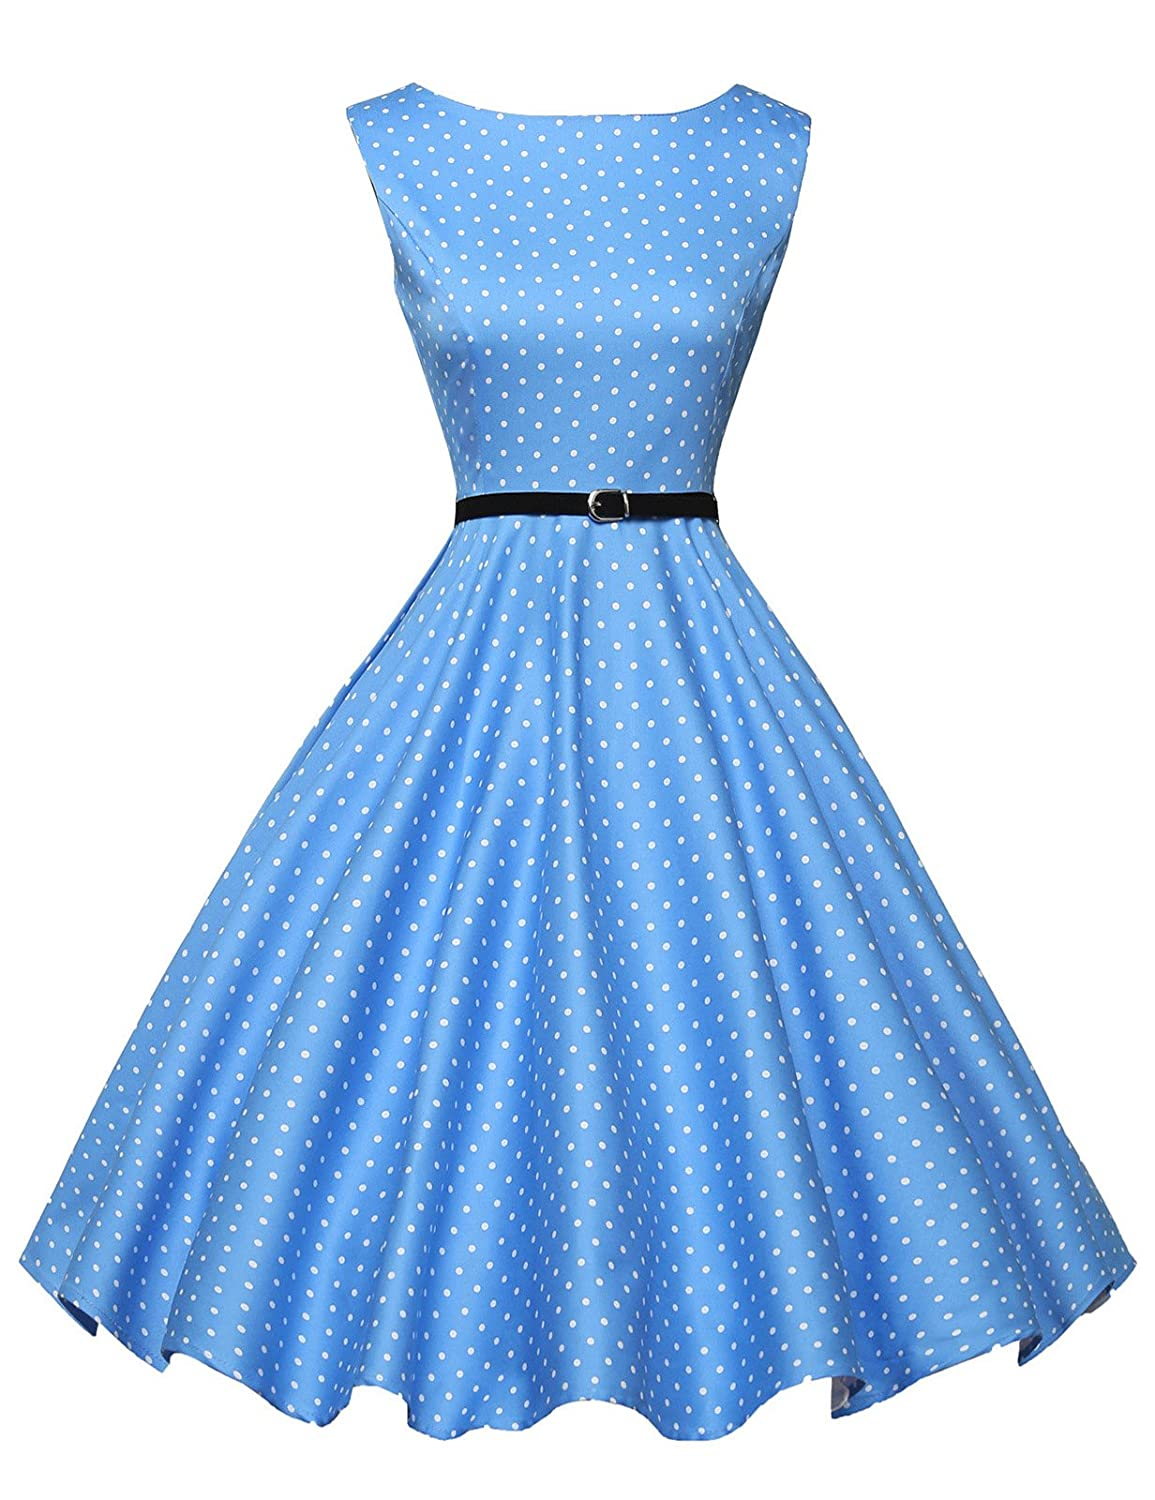 1960s Style Dresses Retro Inspired Fashion